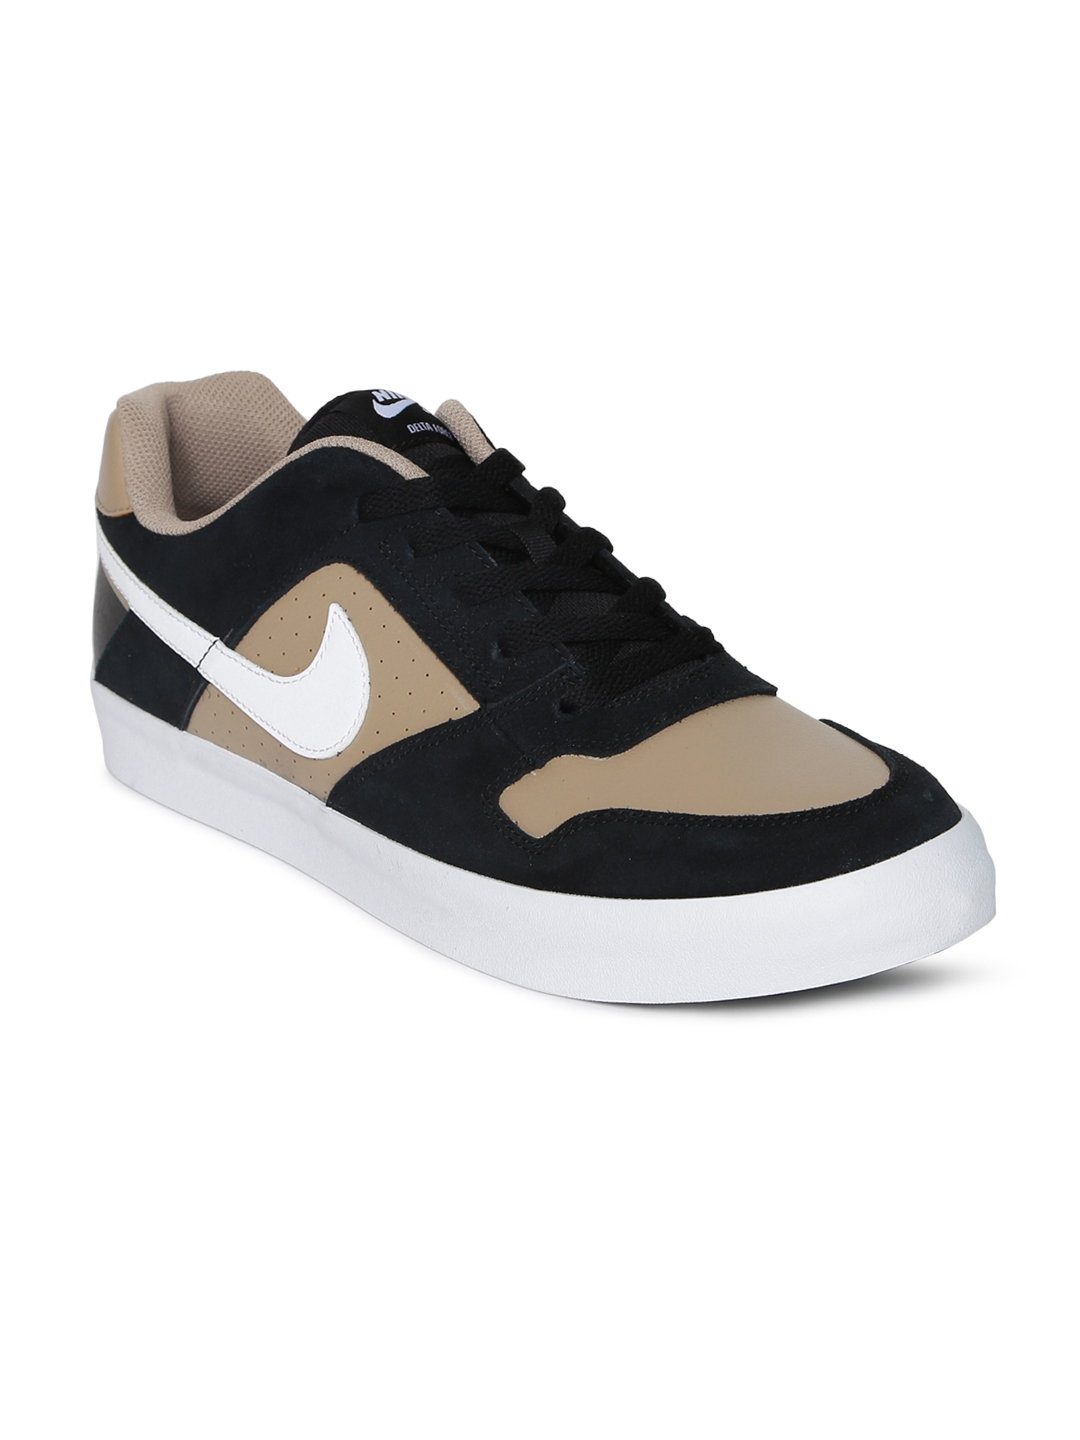 best loved 6635d b3493 Nike Men Black Delta Force Vulc Skateboarding Shoes